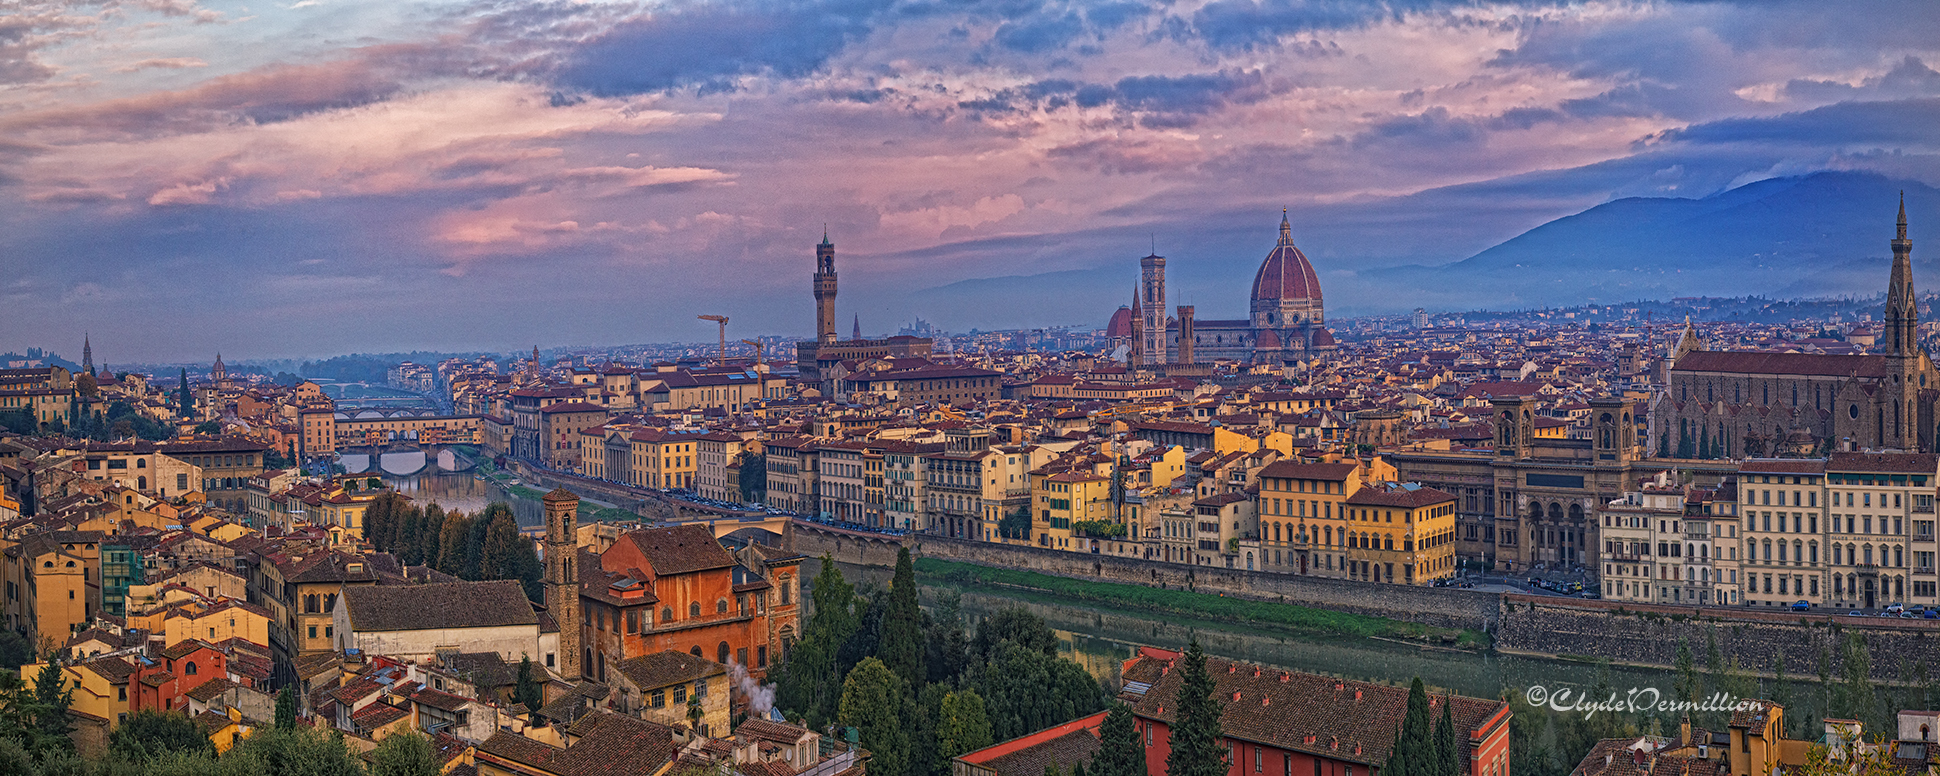 Panorama-of-florence-20x50-copy_kux9km